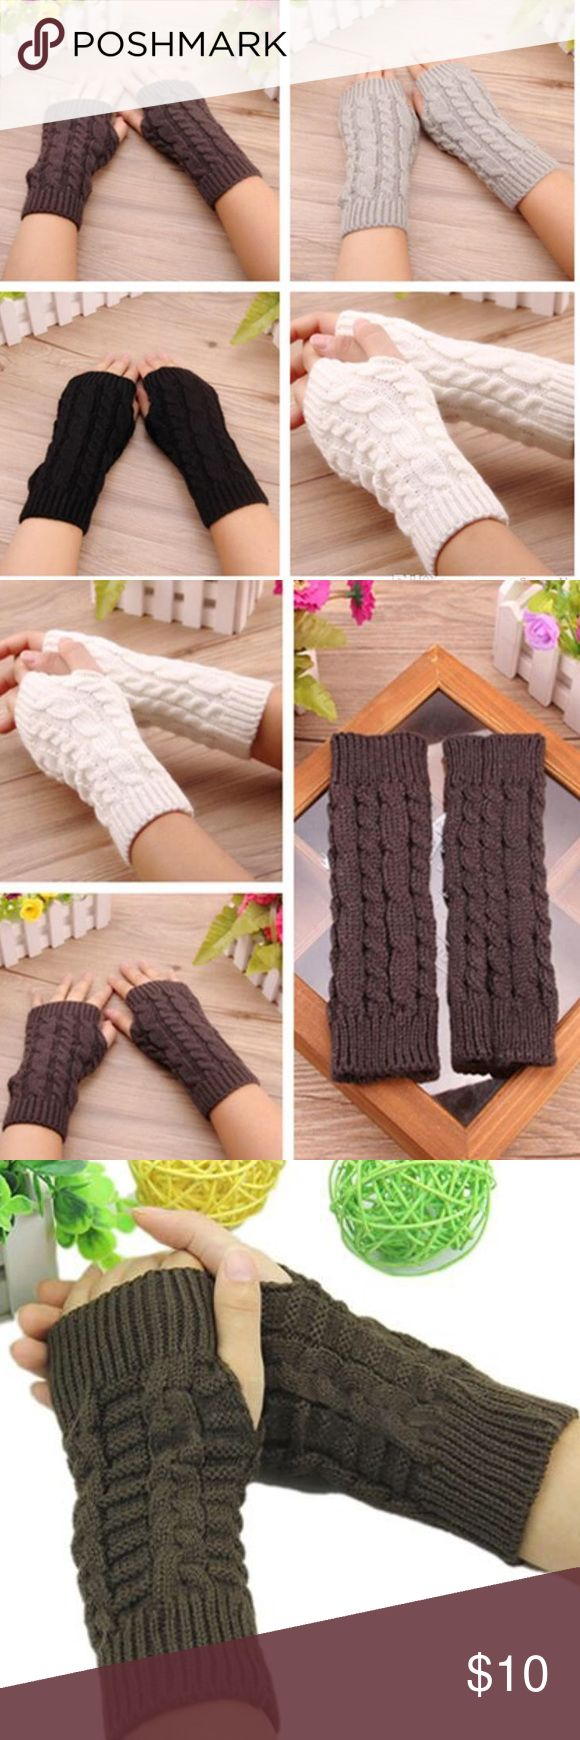 Cable knit hand socks-winter weather cozies Choice of color. Super cozy and warm. Fingers exposed to allow maximum range of motion. So Cal Collective  Accessories Gloves & Mittens